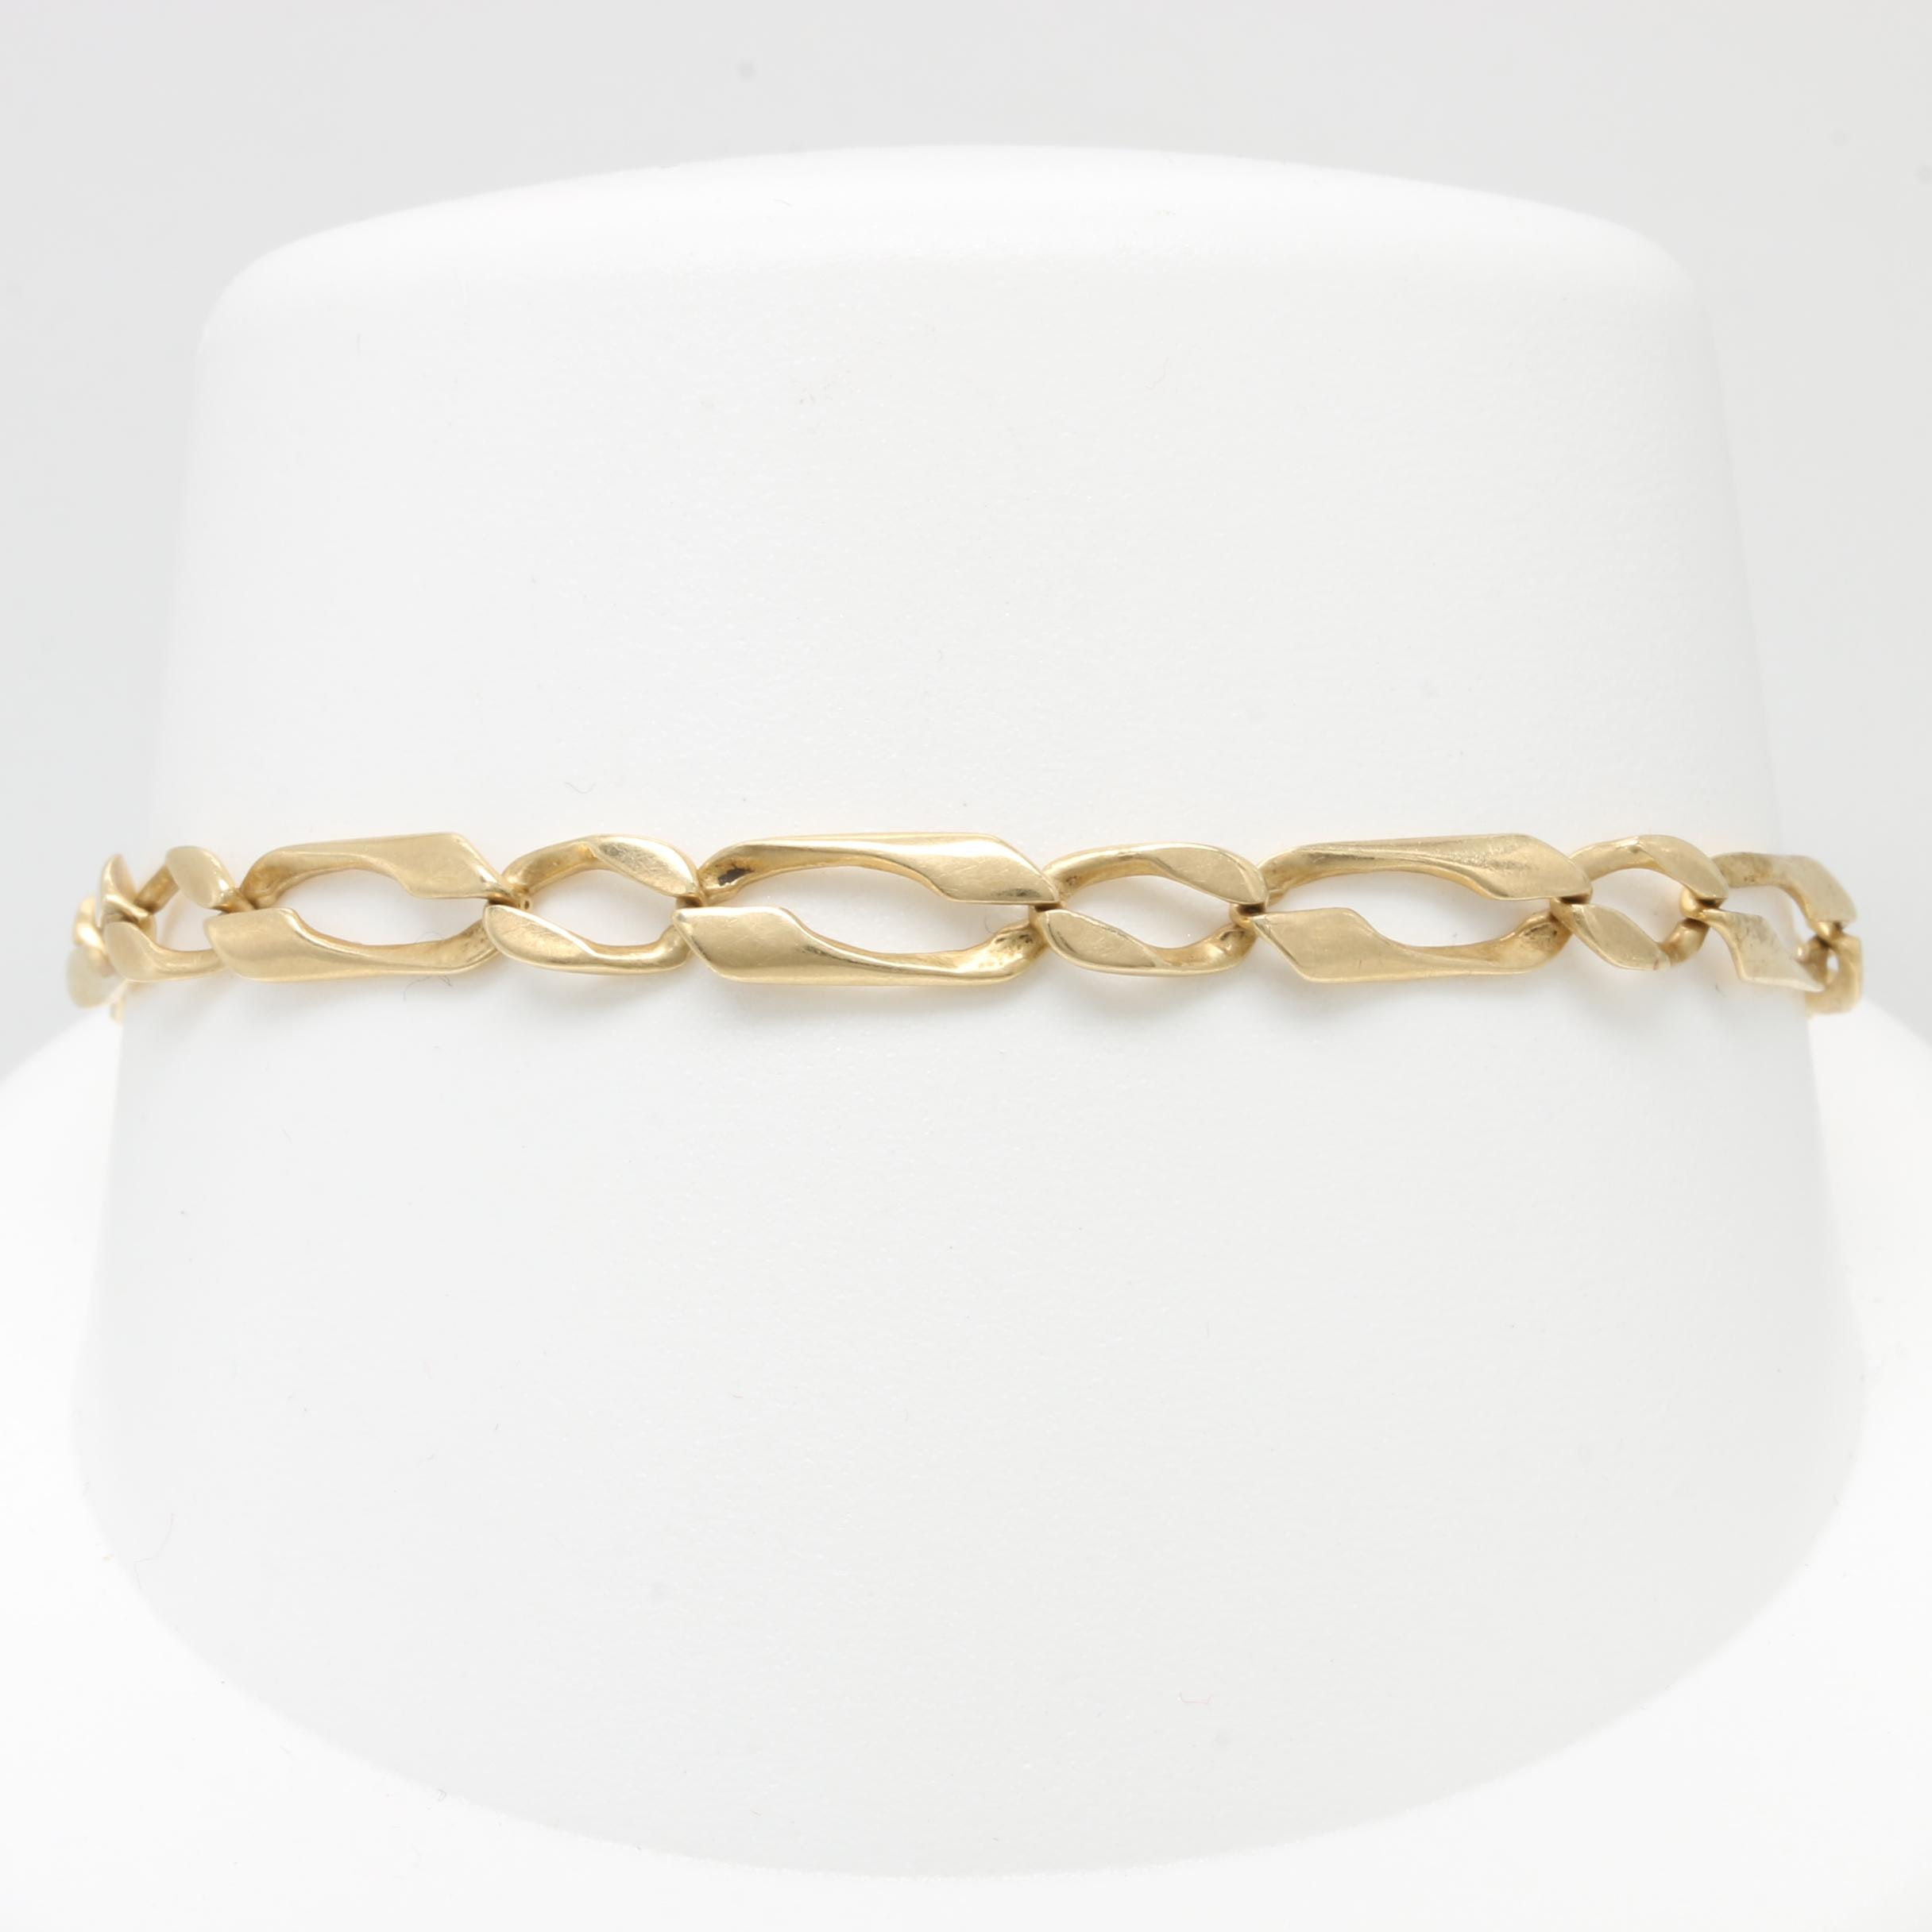 Scrap 14K and 18K Yellow Gold Bracelet